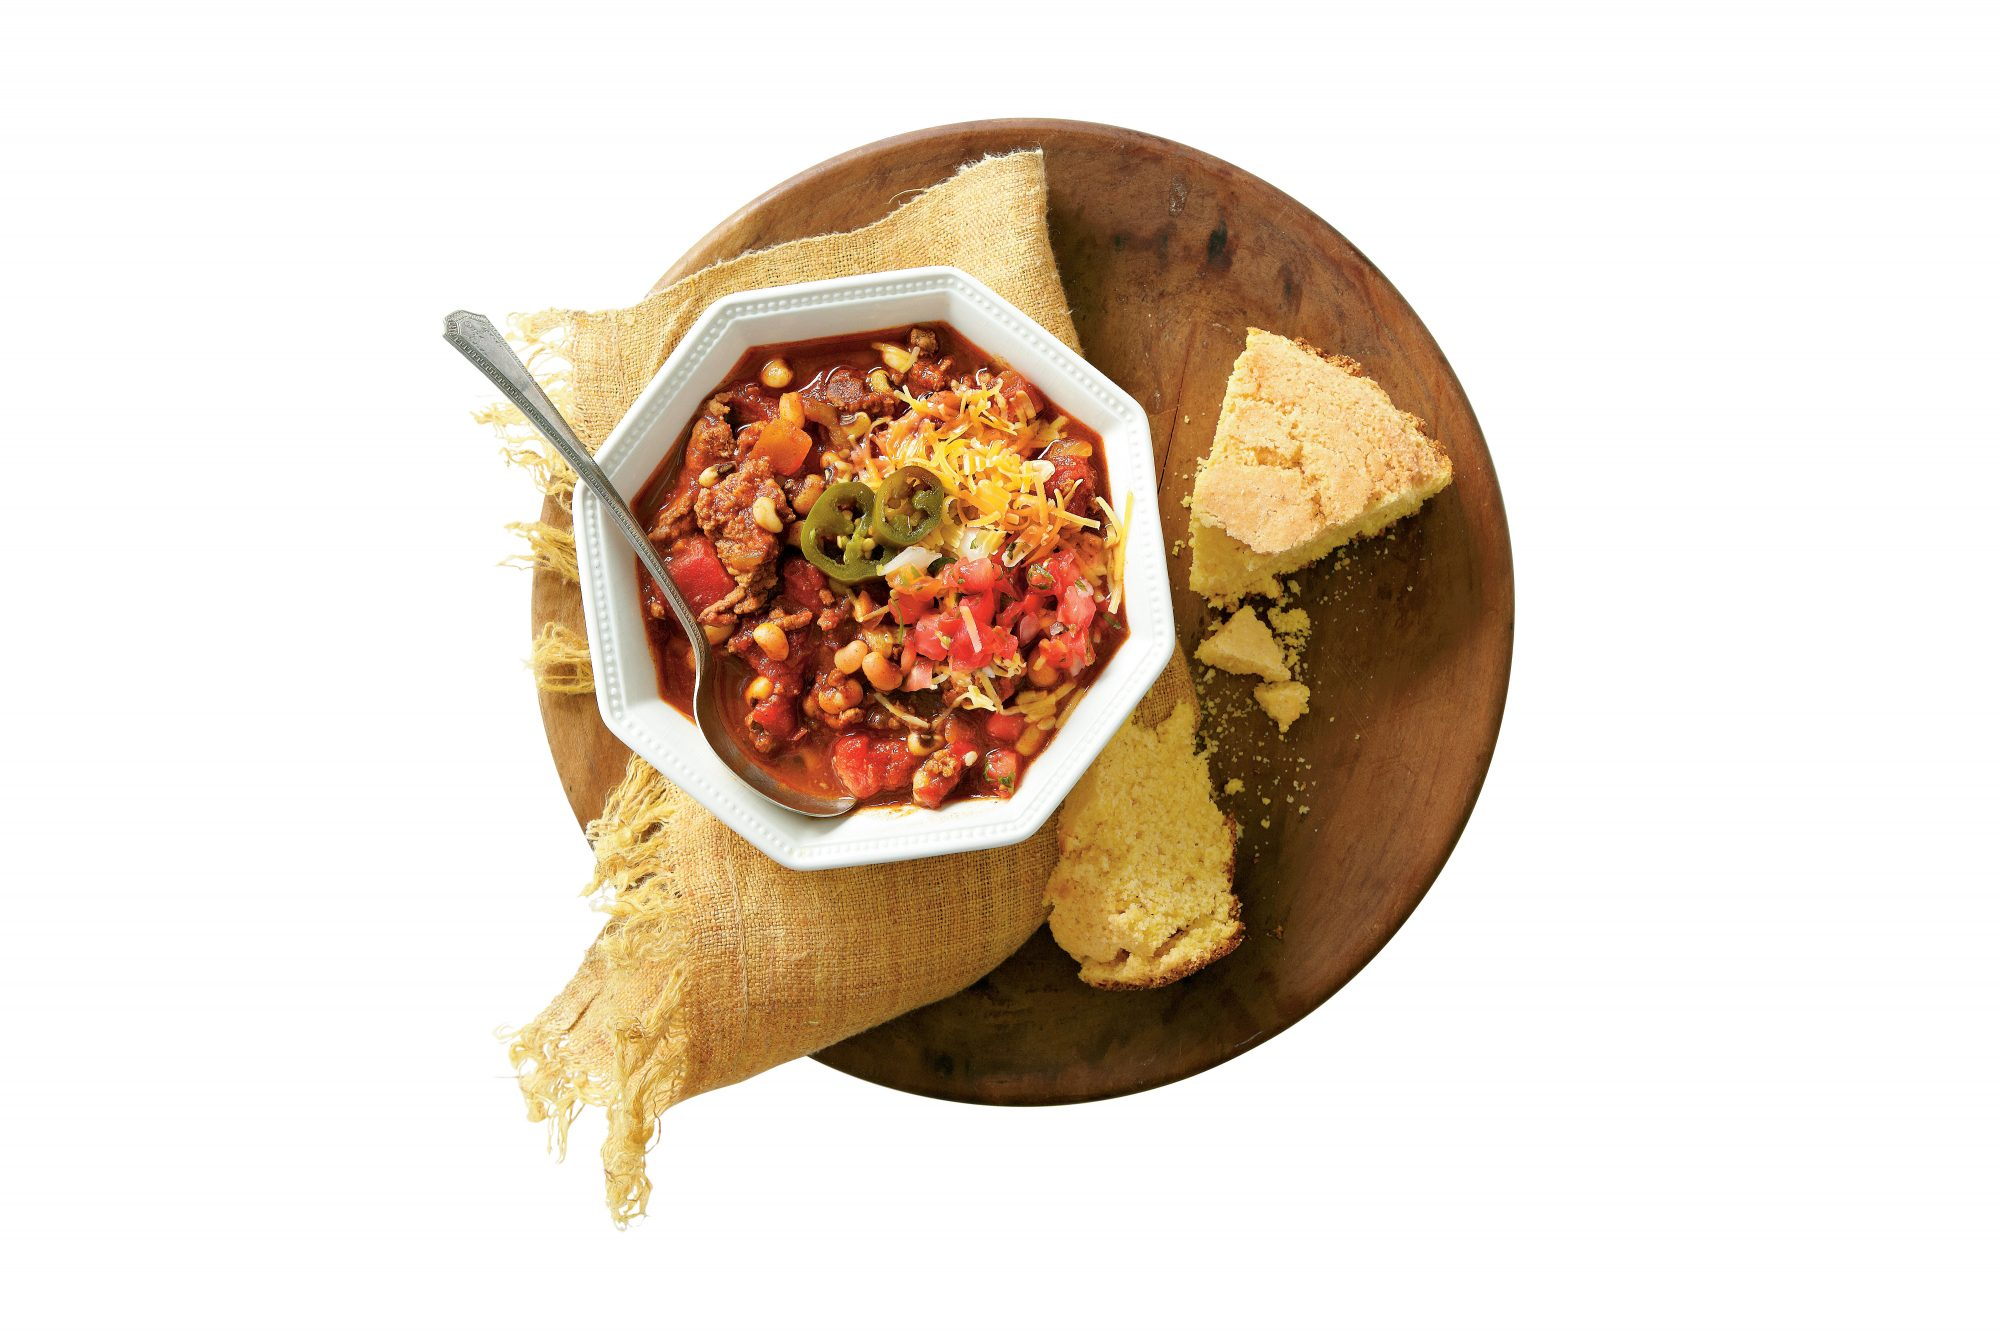 Beef-and-Black-Eyed-Pea Chili